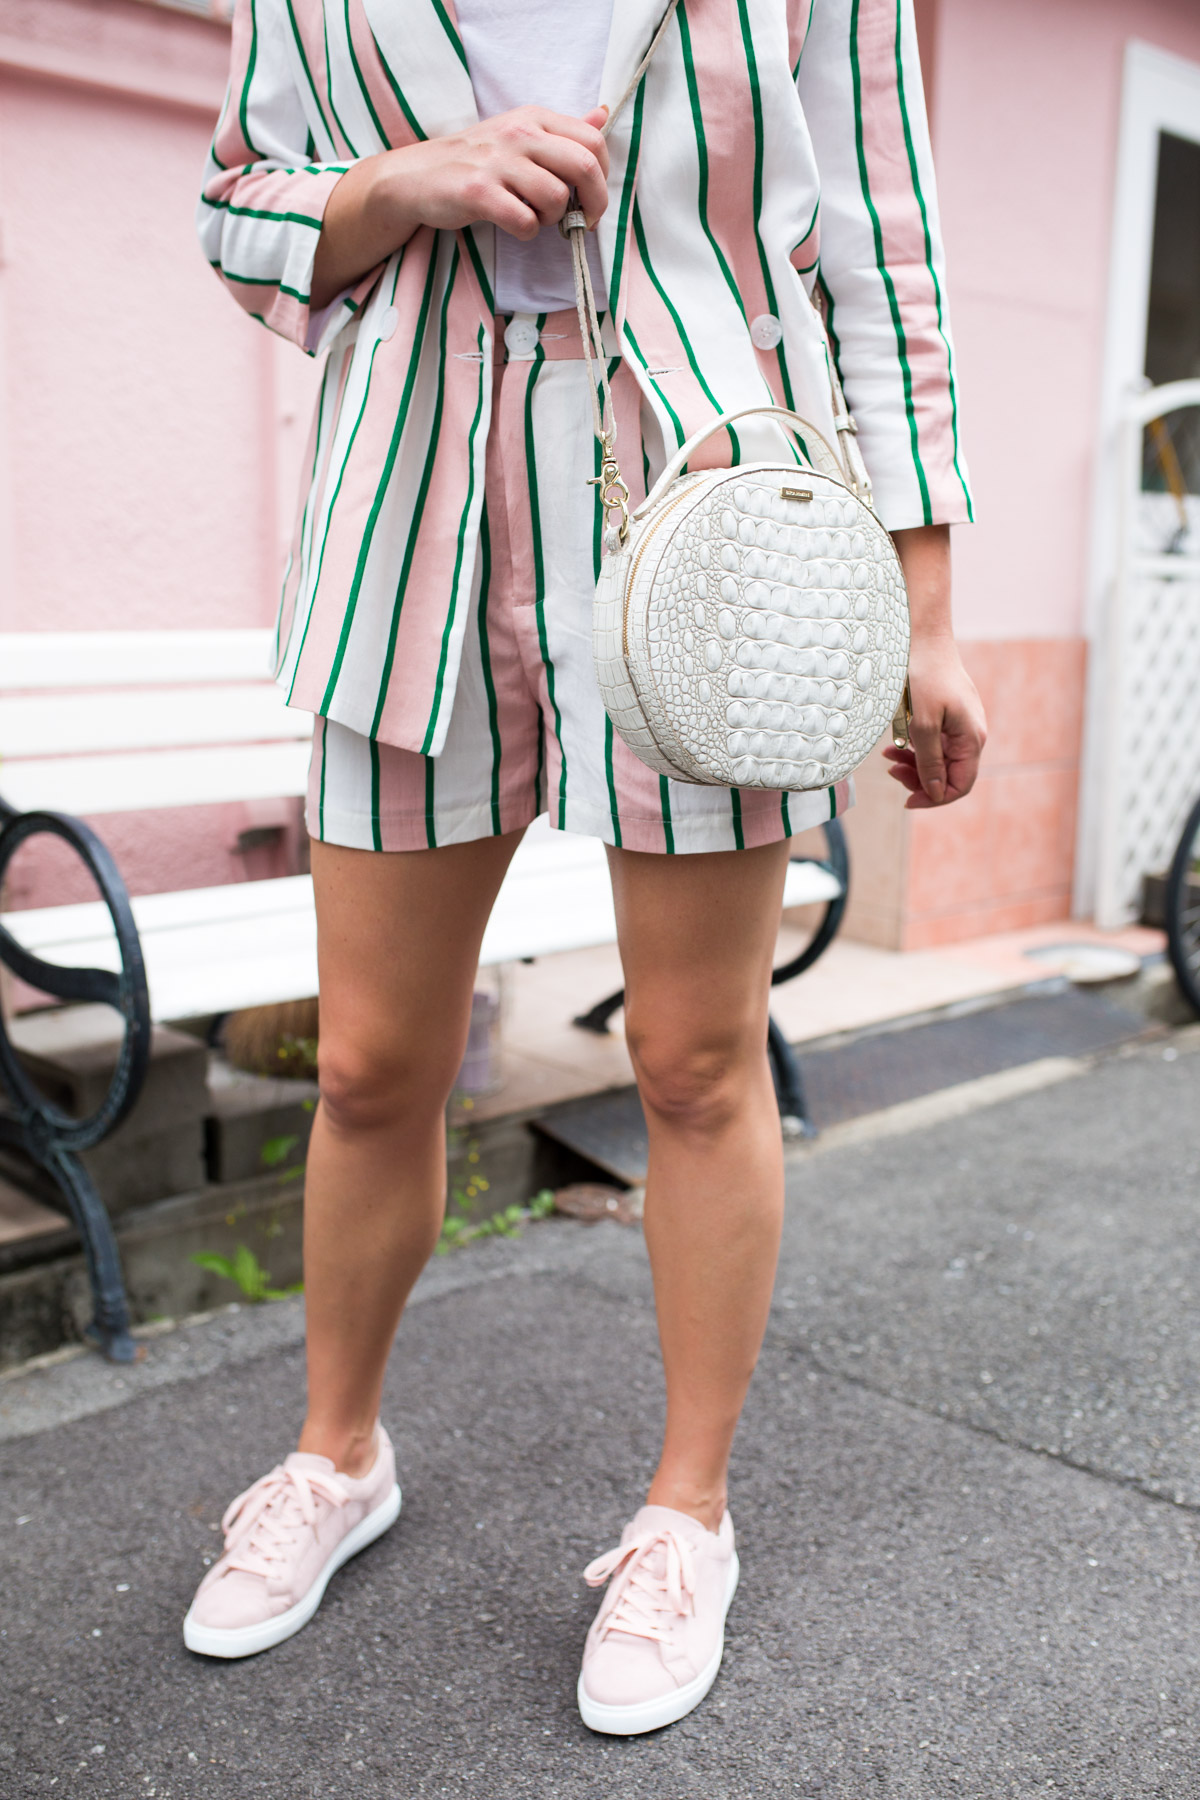 Fashion blogger Jessica Sturdy wearing the new white embossed round Brahmin Lane Melbourne bag with a matching blazer and shorts in Japan.